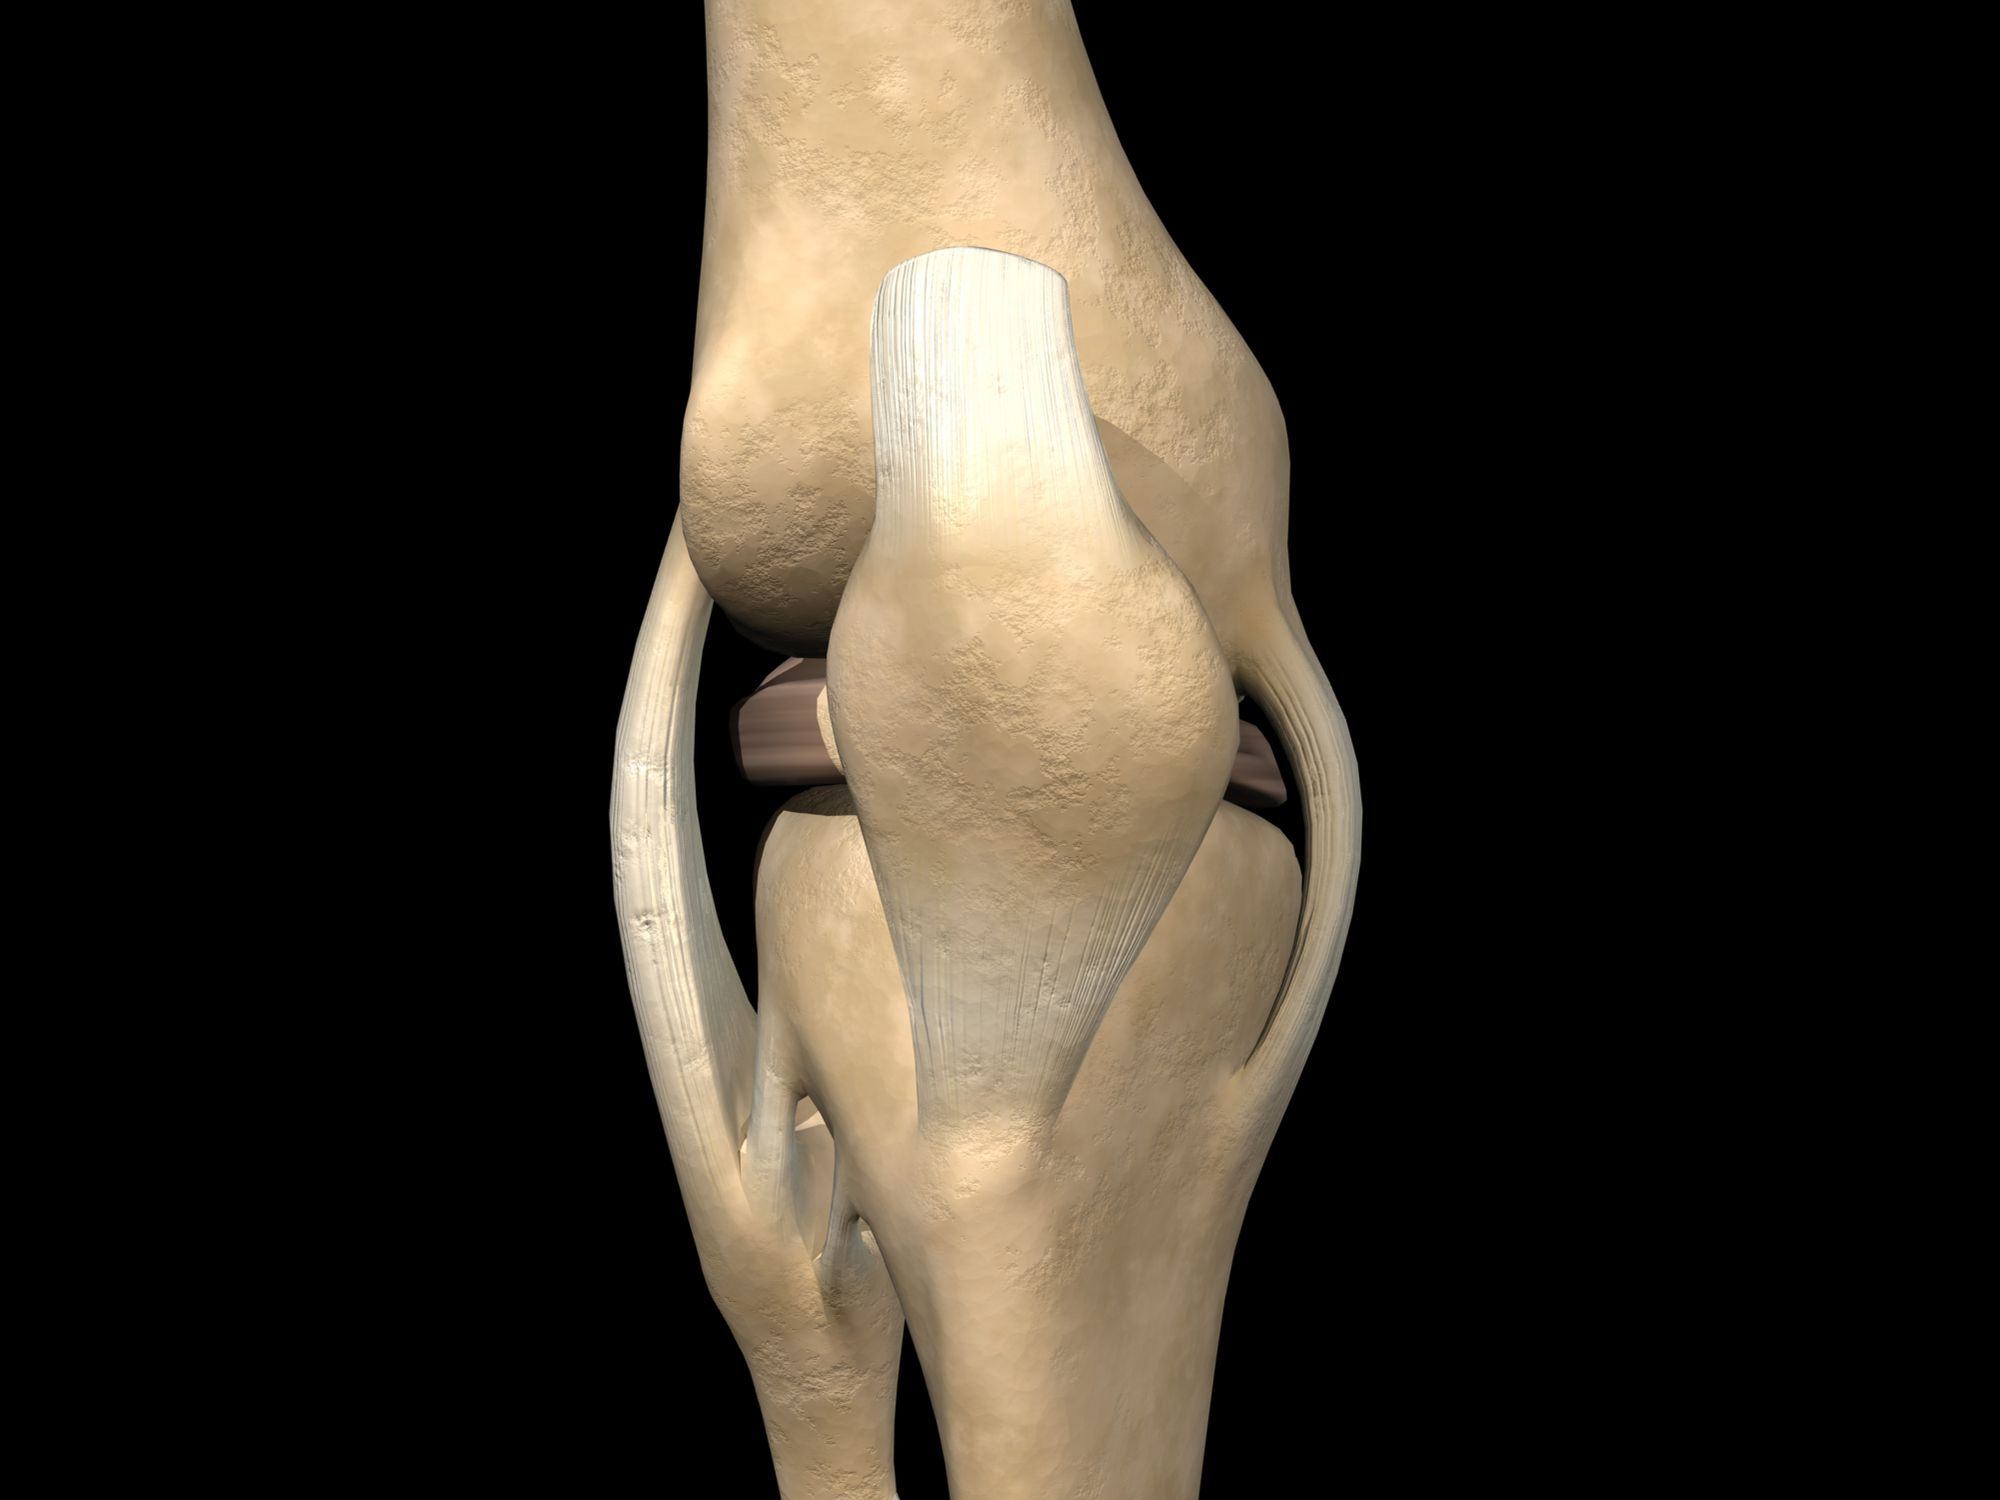 dc6770cddb1 MCL Tear or Medial Collateral Ligament Injuries